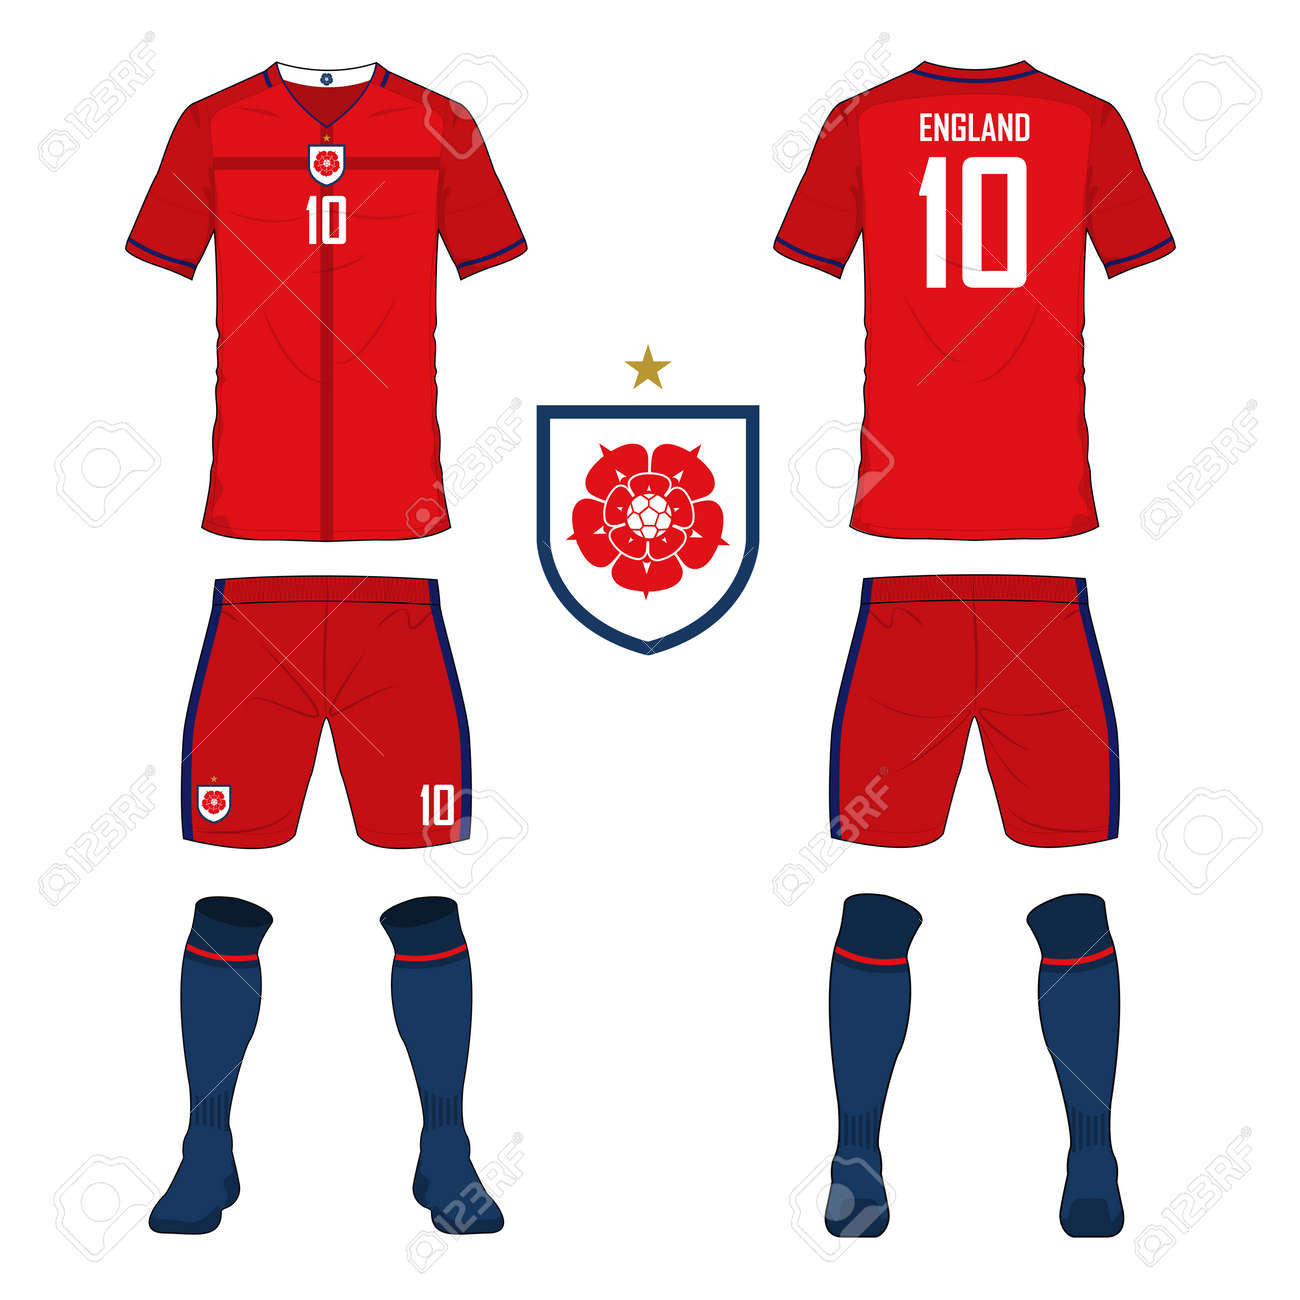 online store 16b8f 483cb Set of soccer jersey or football kit template for England national..